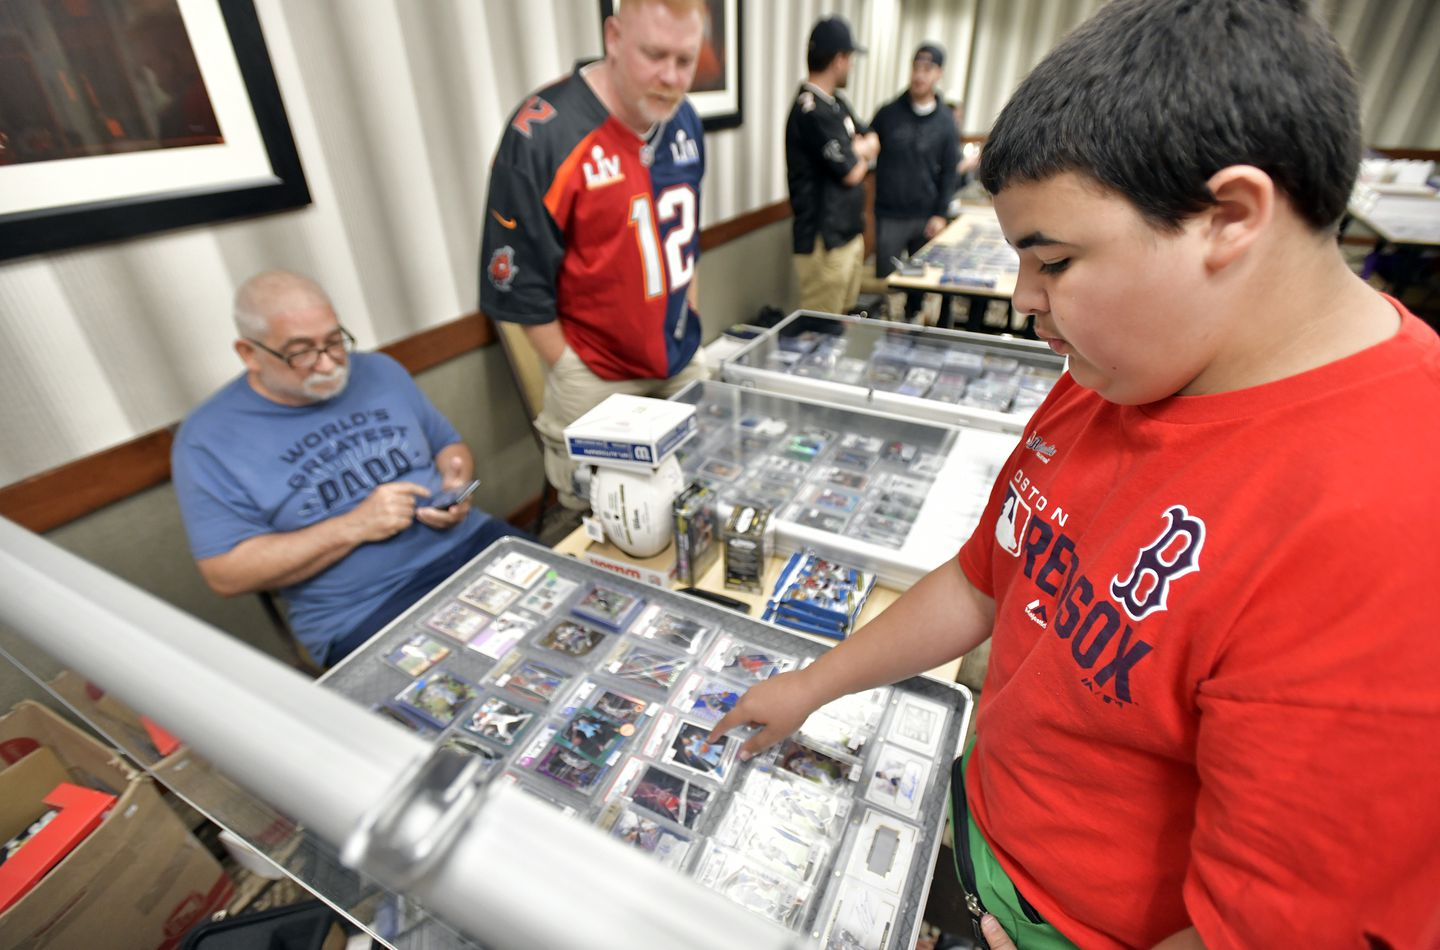 Davie Baia, 13, browses the table of father-and-son team WIlfred Bouchard of Fall River and Gregory Bouchard of Seekonk at the weekly Woburn Sportscard Show.